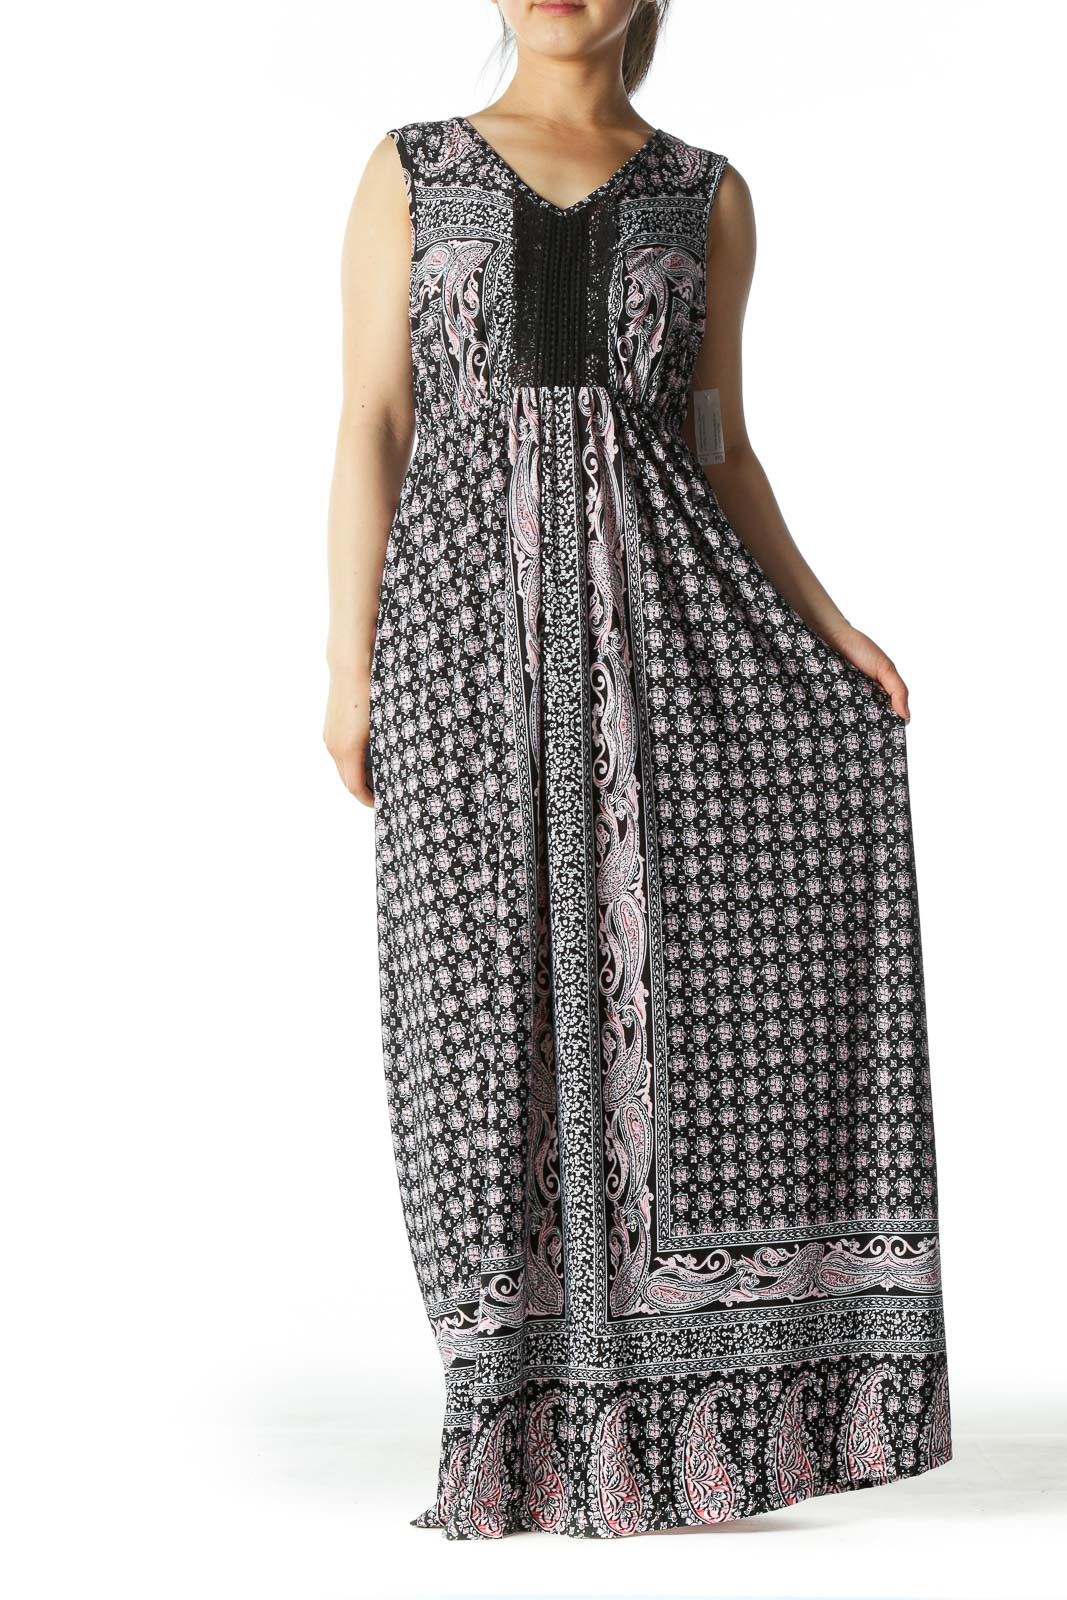 Black/White/Pink V-Neck Printed Stretch Maxi Dress